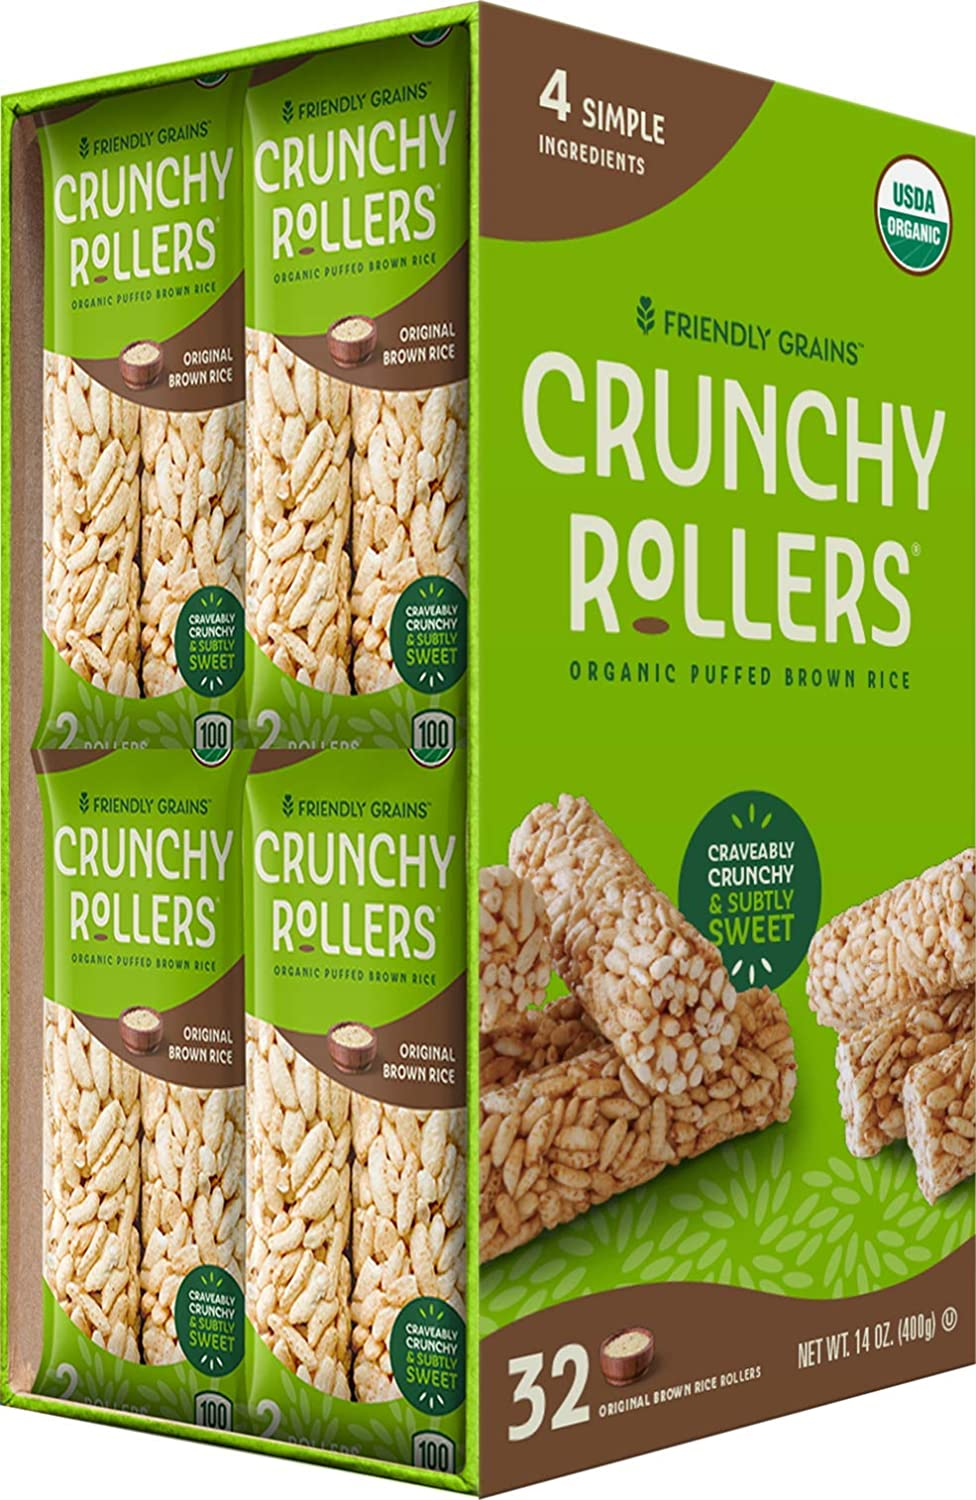 Friendly Grains - Crunchy Rollers Origin Rice Mail order security cheap Organic Snacks